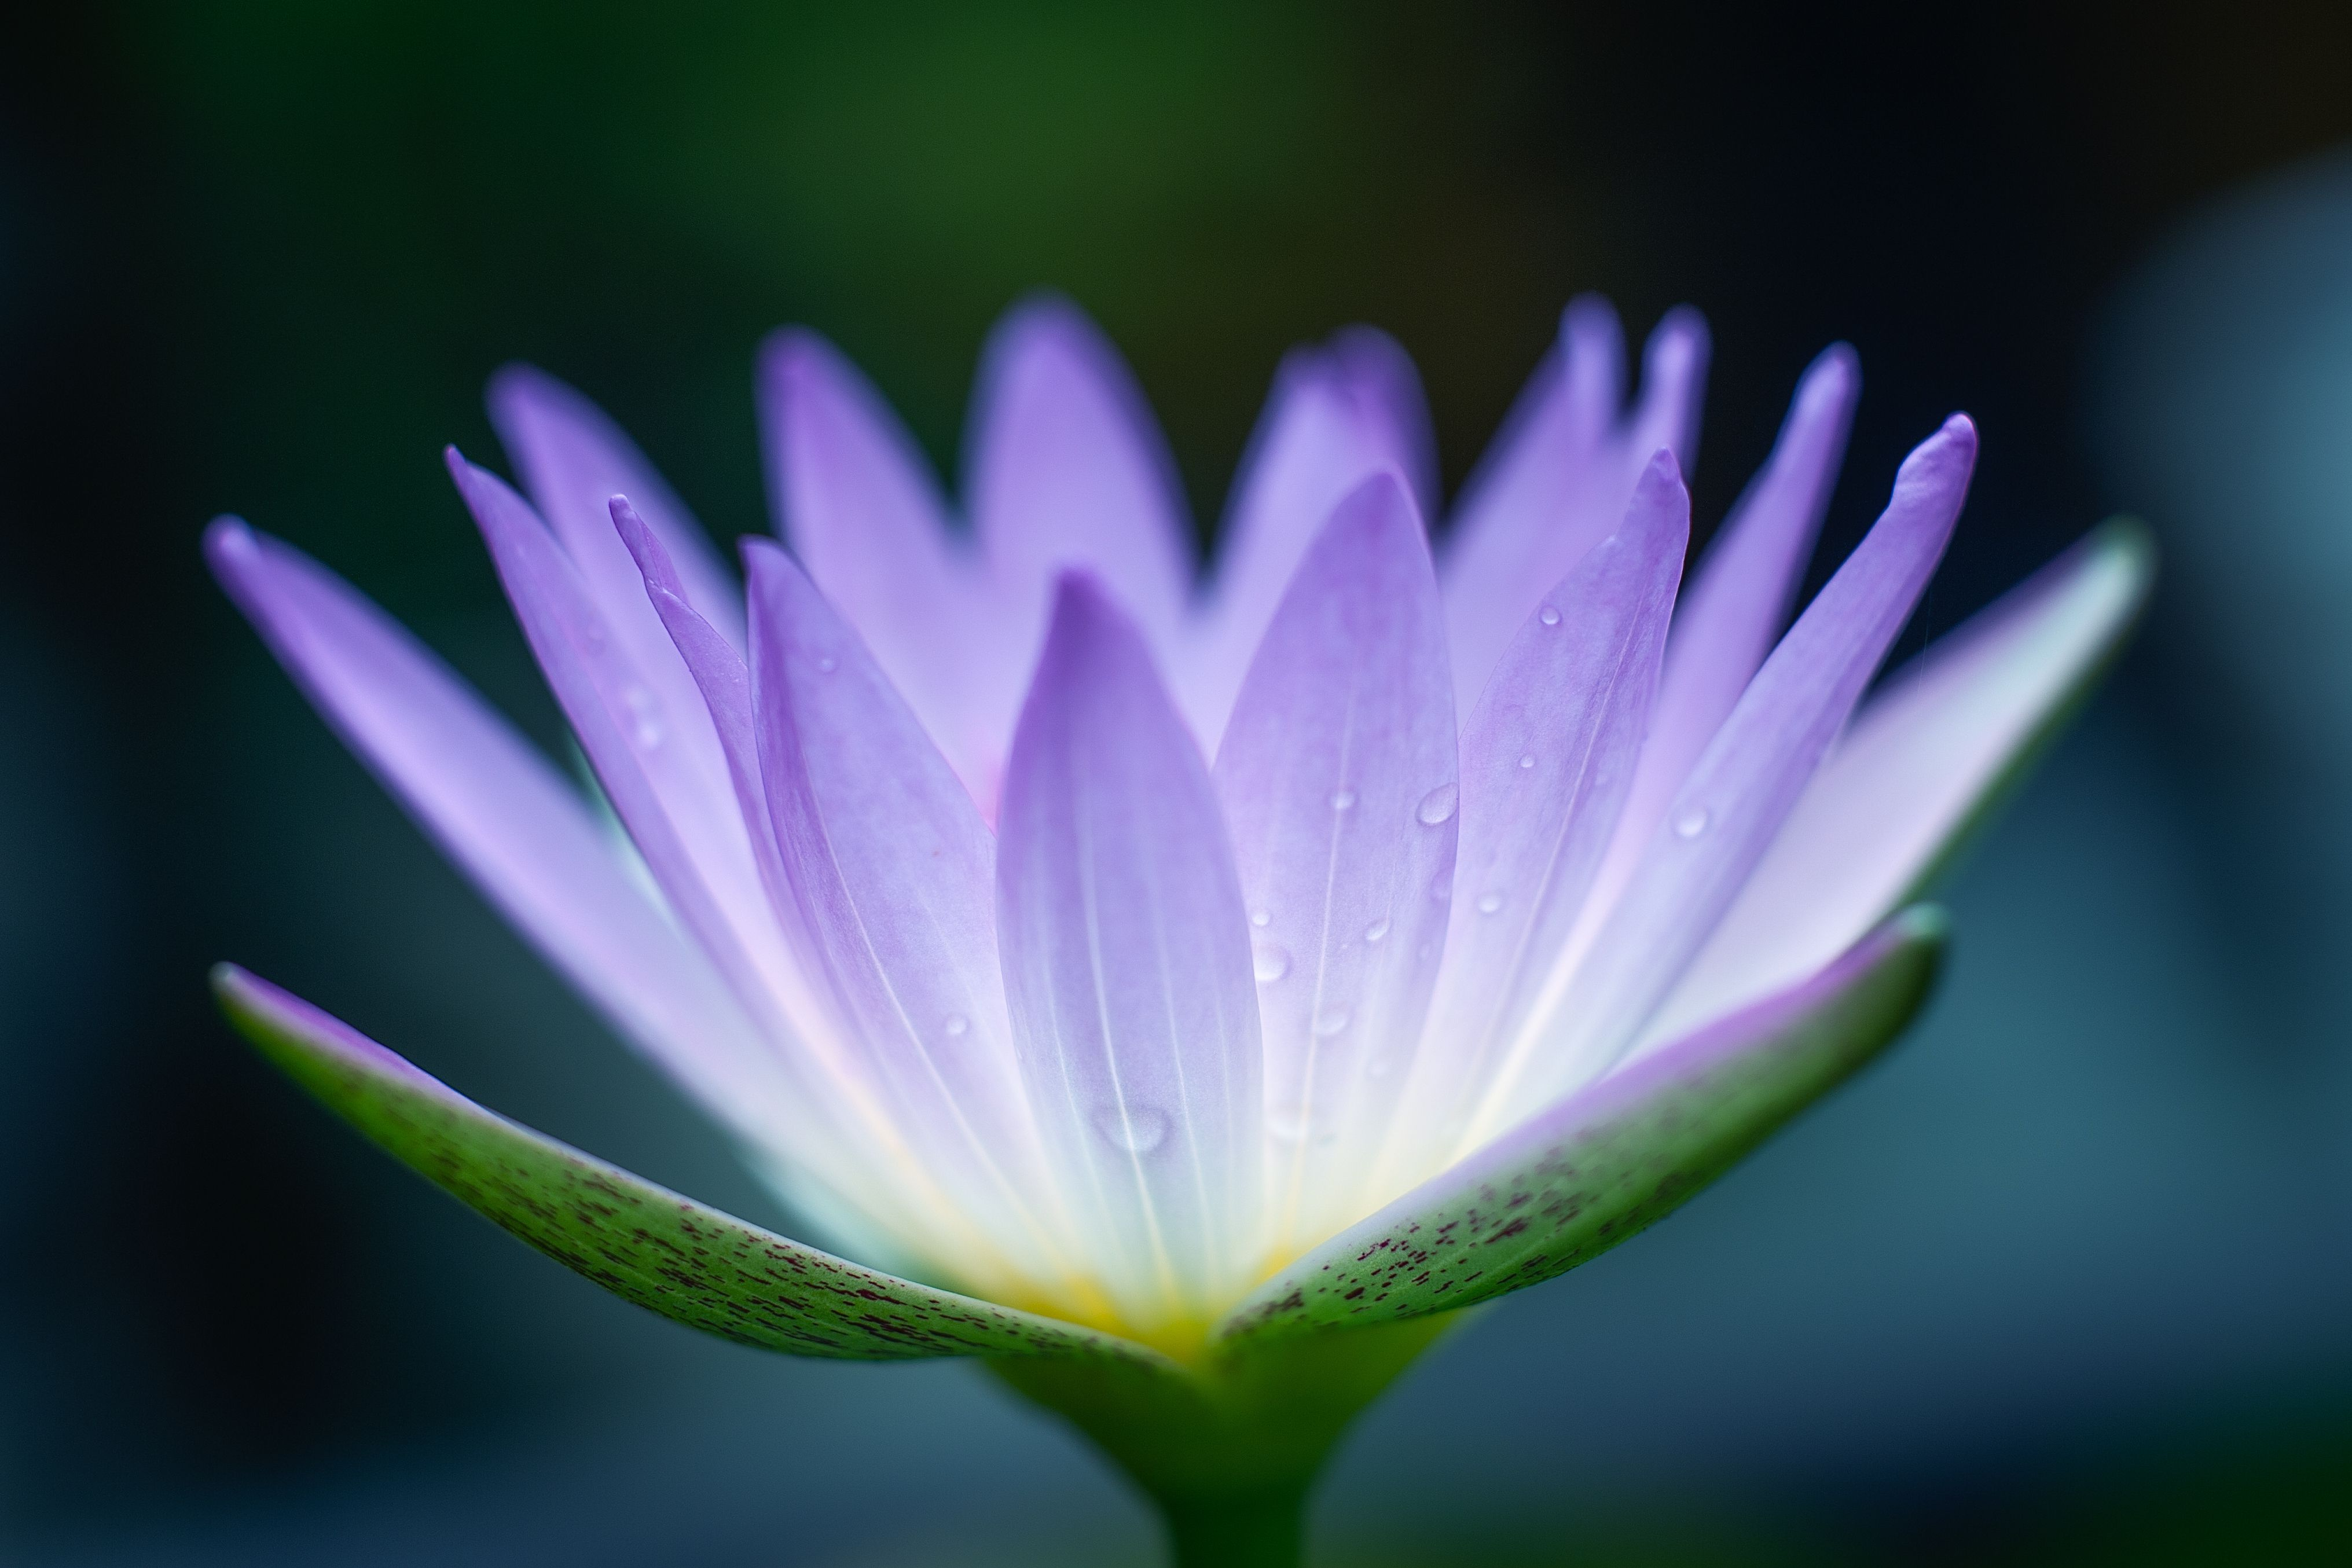 Osho Hd Wallpaper The Many Symbolic Meanings Of The Lotus In Buddhism